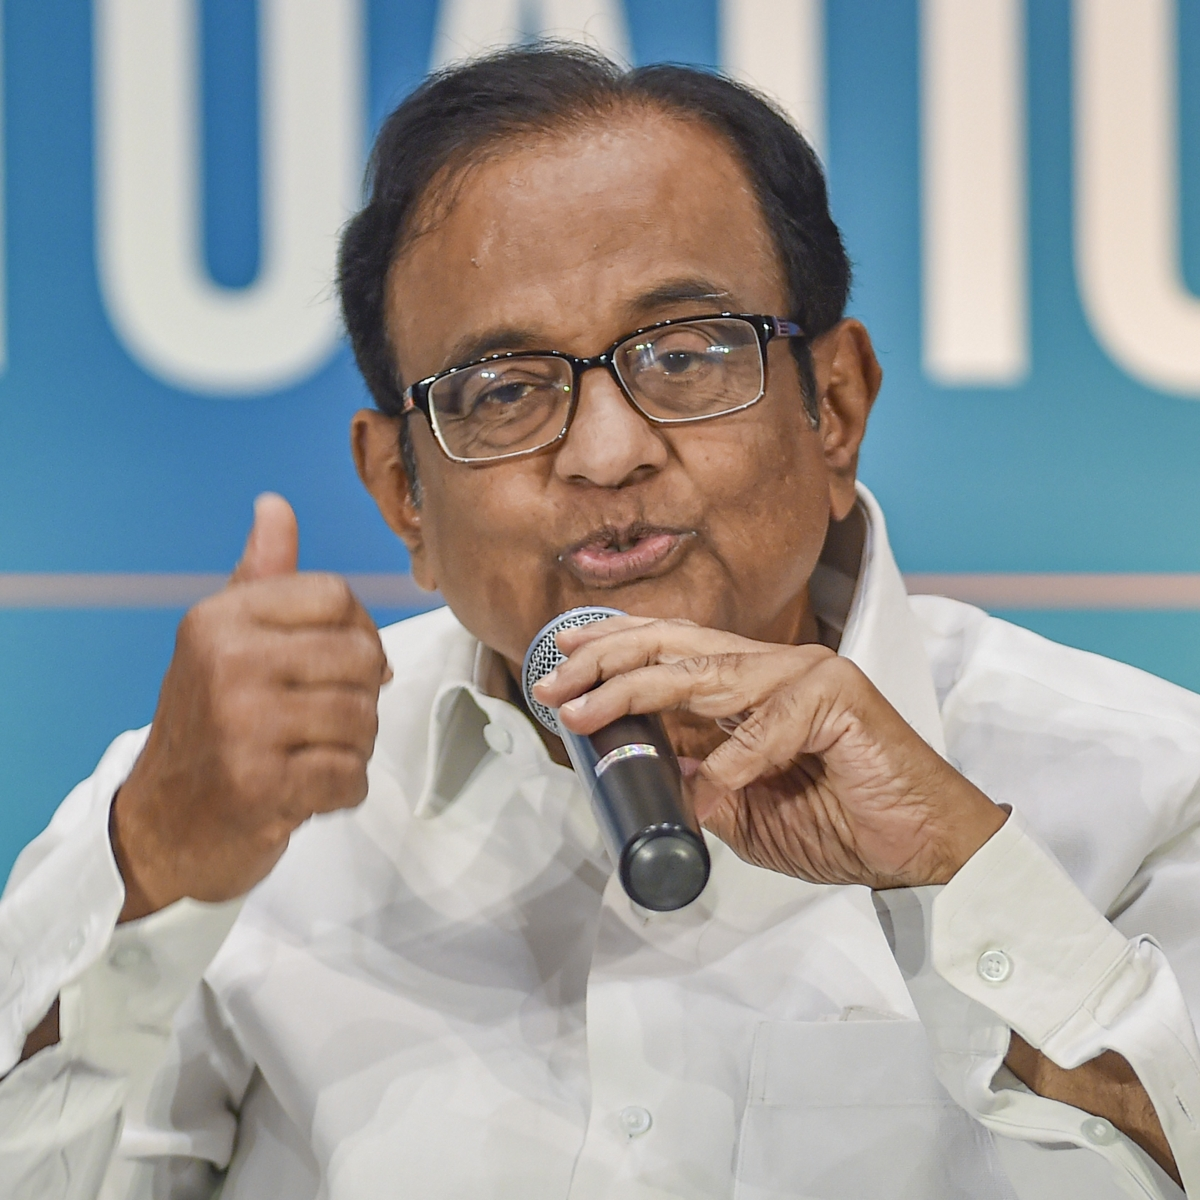 States need 'hard cash', govt's 'letter of comfort' has no value: Chidambaram on GST compensation